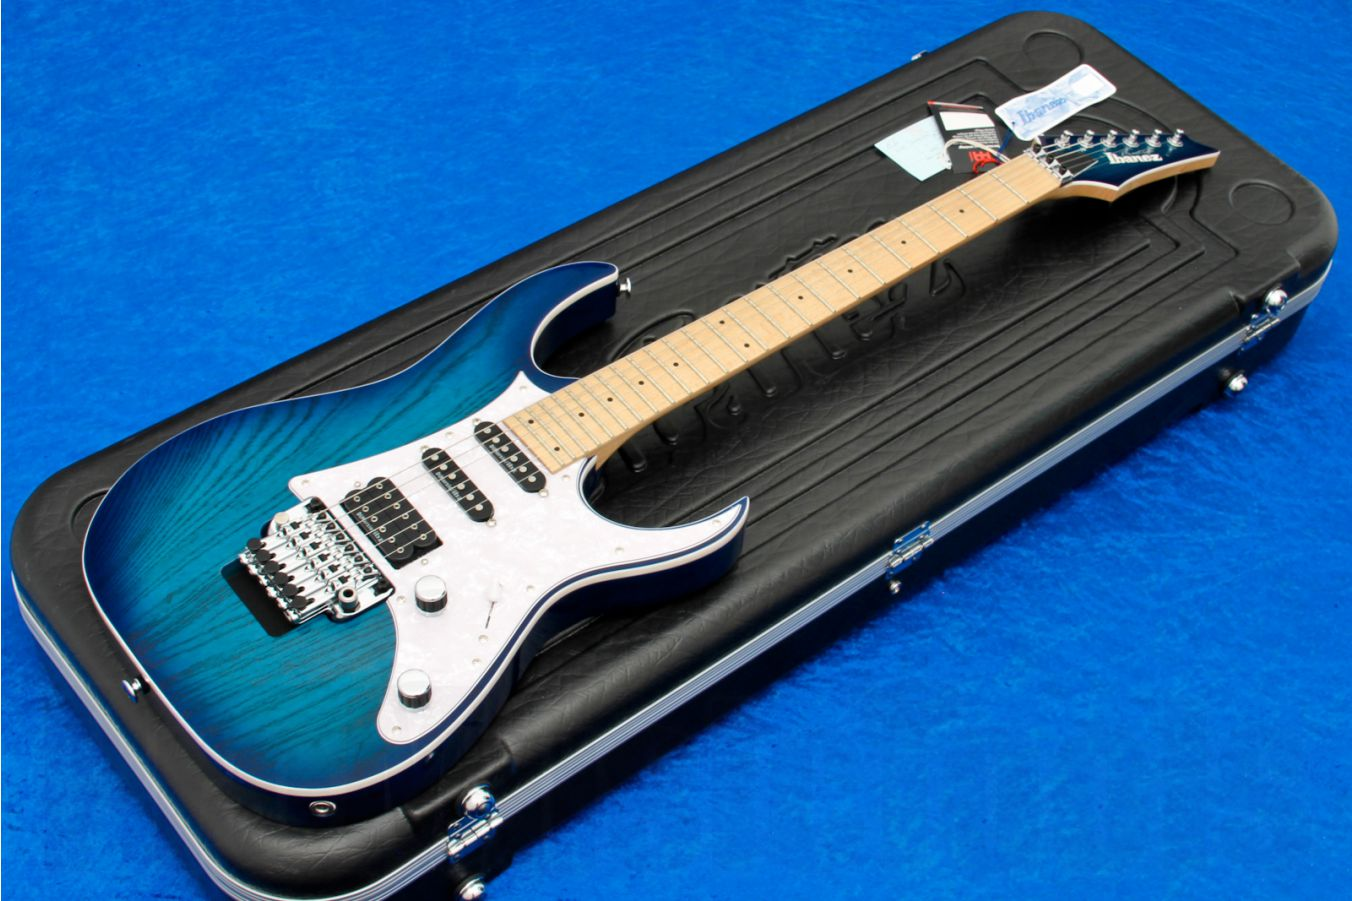 Ibanez RG2560MZEX ABT Prestige - Abyss Blue Burst Limited Edition